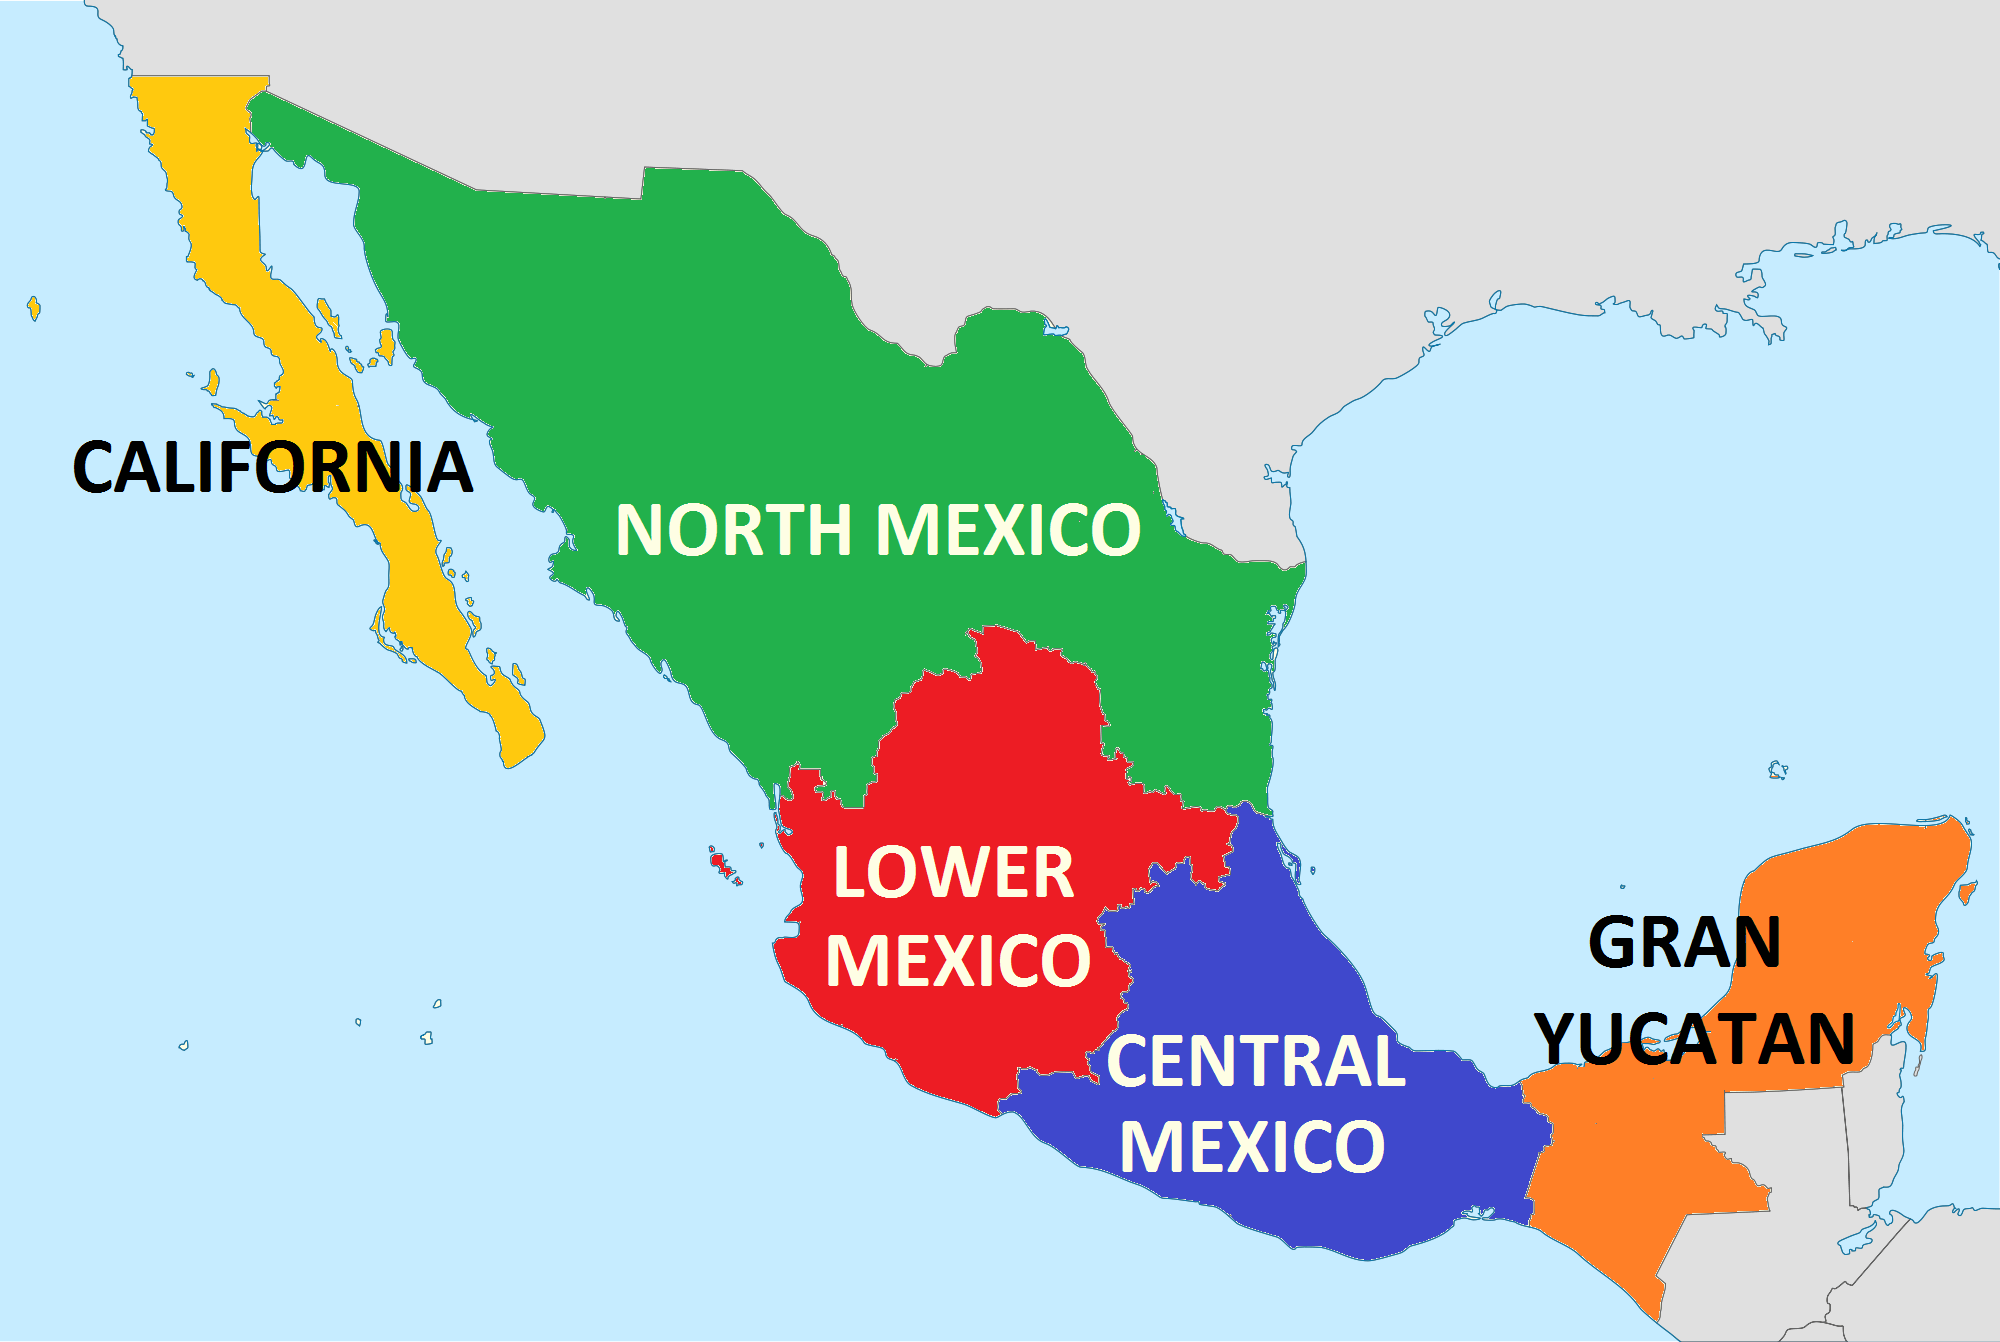 Image Mexican US Statespng Future FANDOM Powered By Wikia - Future map of us